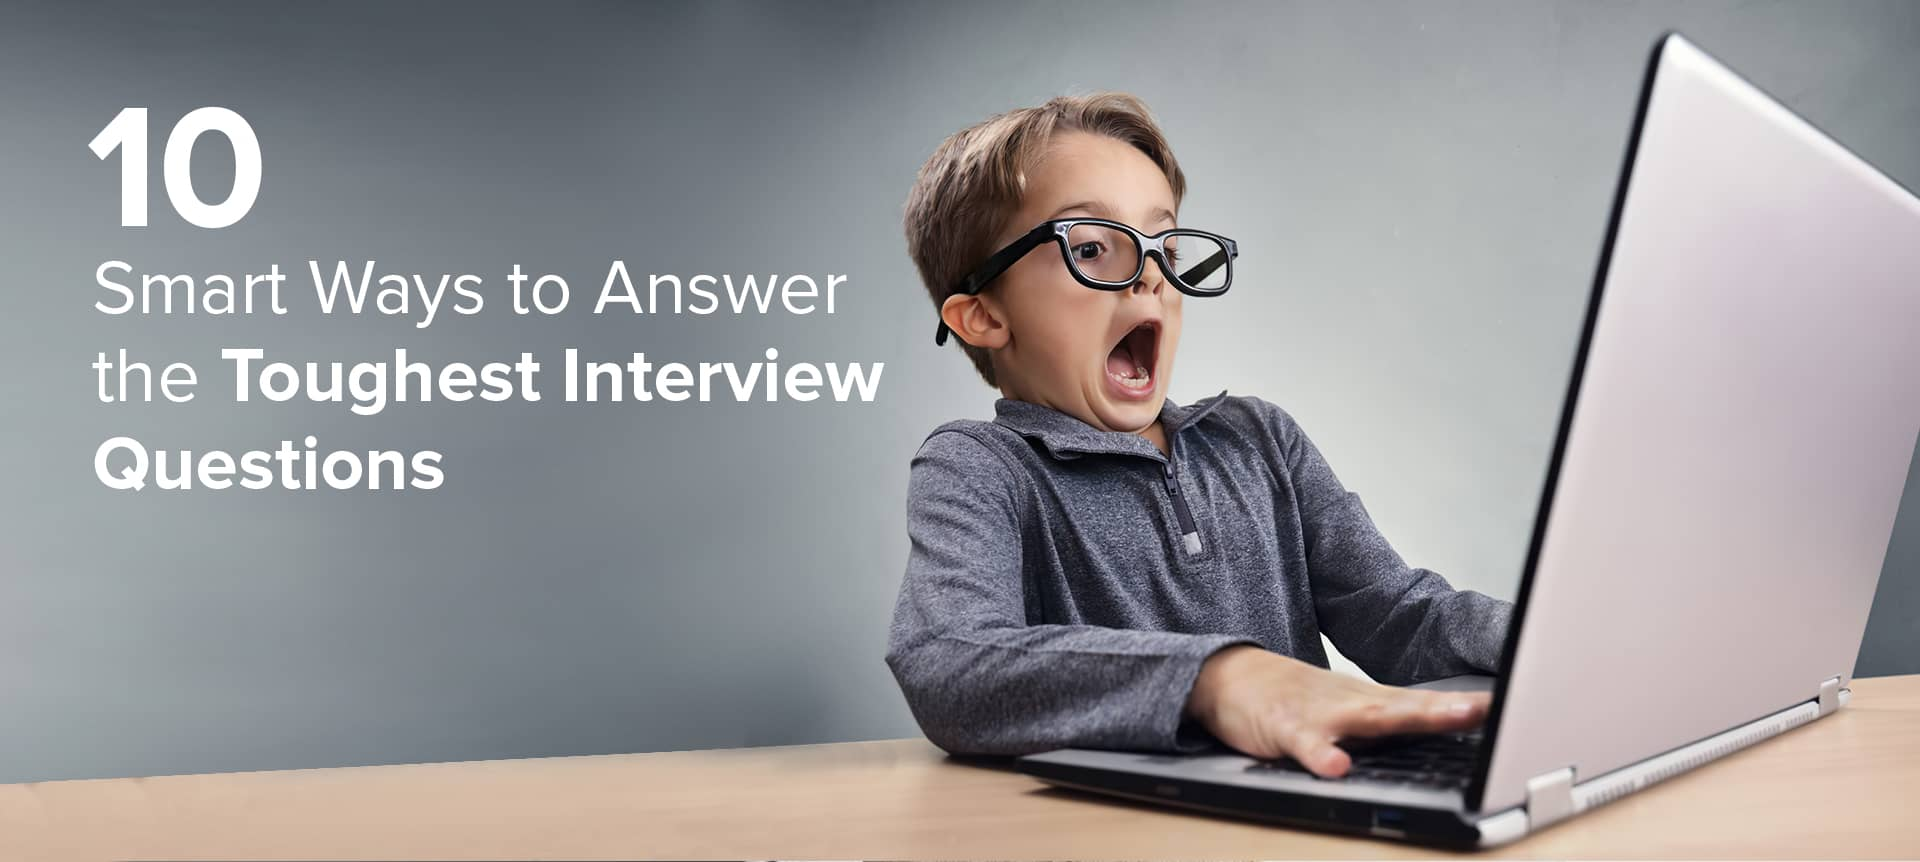 A young kid answering tough video interviewing questions